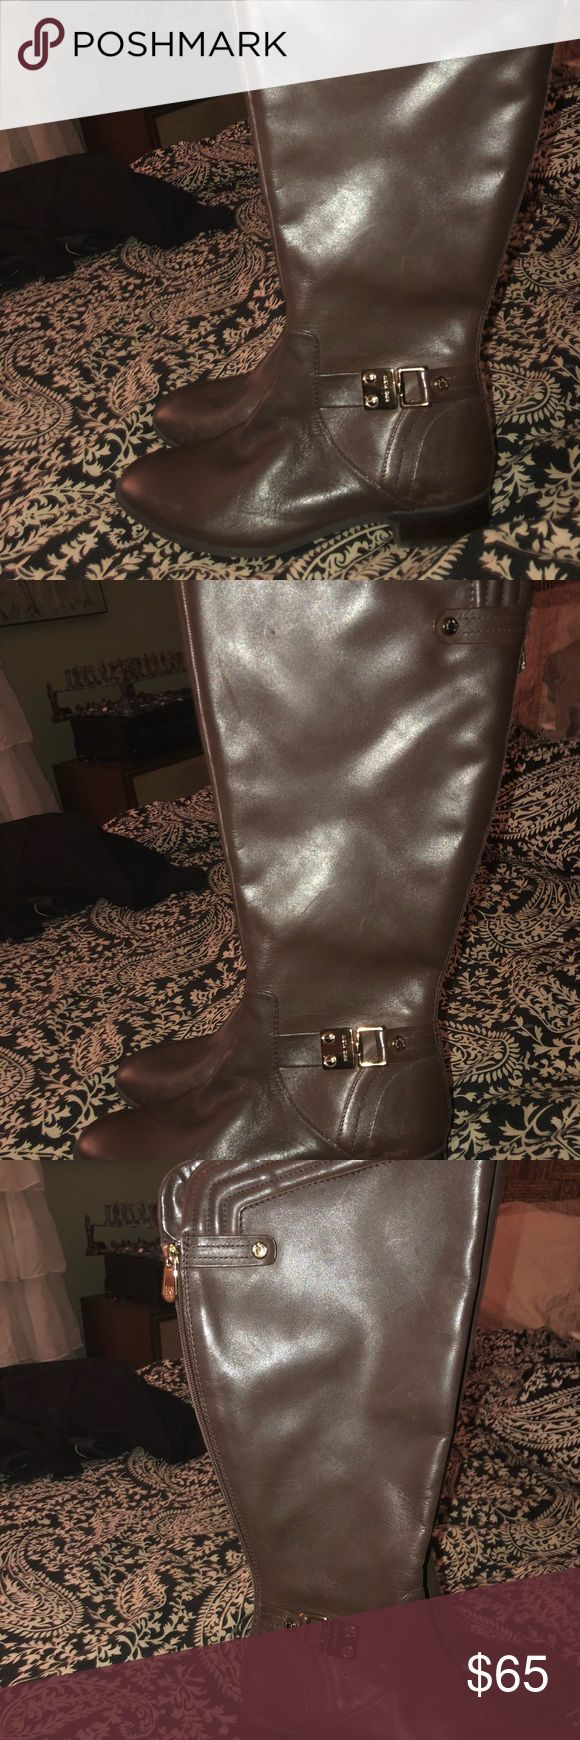 """Anne Klein Kaydon Wide Calf Riding Boots 7.5 Wanted to try a new style of boots, felt like I had nothing that looked right with them. never worn   From website: Leather Synthetic sole Shaft measures approximately 16"""" from arch The style name is Kaydon. The style number is 25014356-0KN. Brand Color: Dk Brn (Main Color: Brown) Material: Leather Measurements: Shaft measures 16"""", Circumference measures 16"""" and 1"""" heel Width: B(M) Anne Klein Shoes Heeled Boots"""